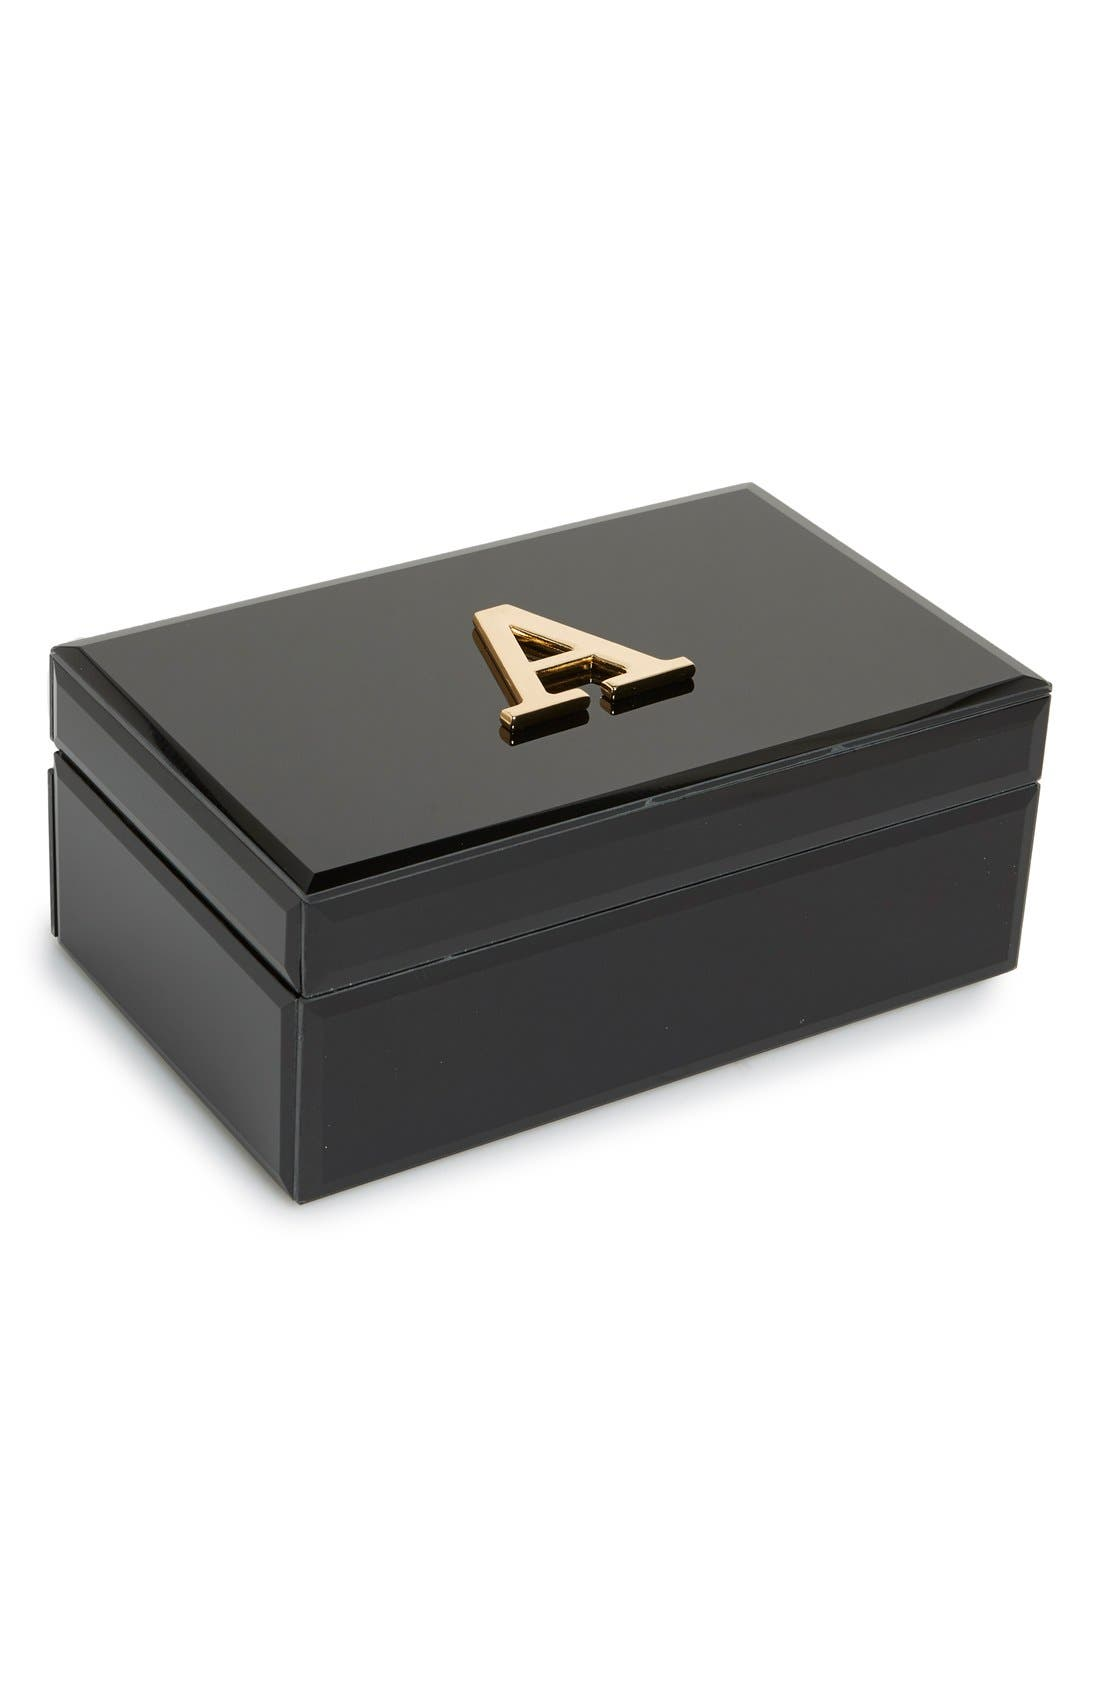 Monogram Jewelry Box,                             Main thumbnail 1, color,                             001